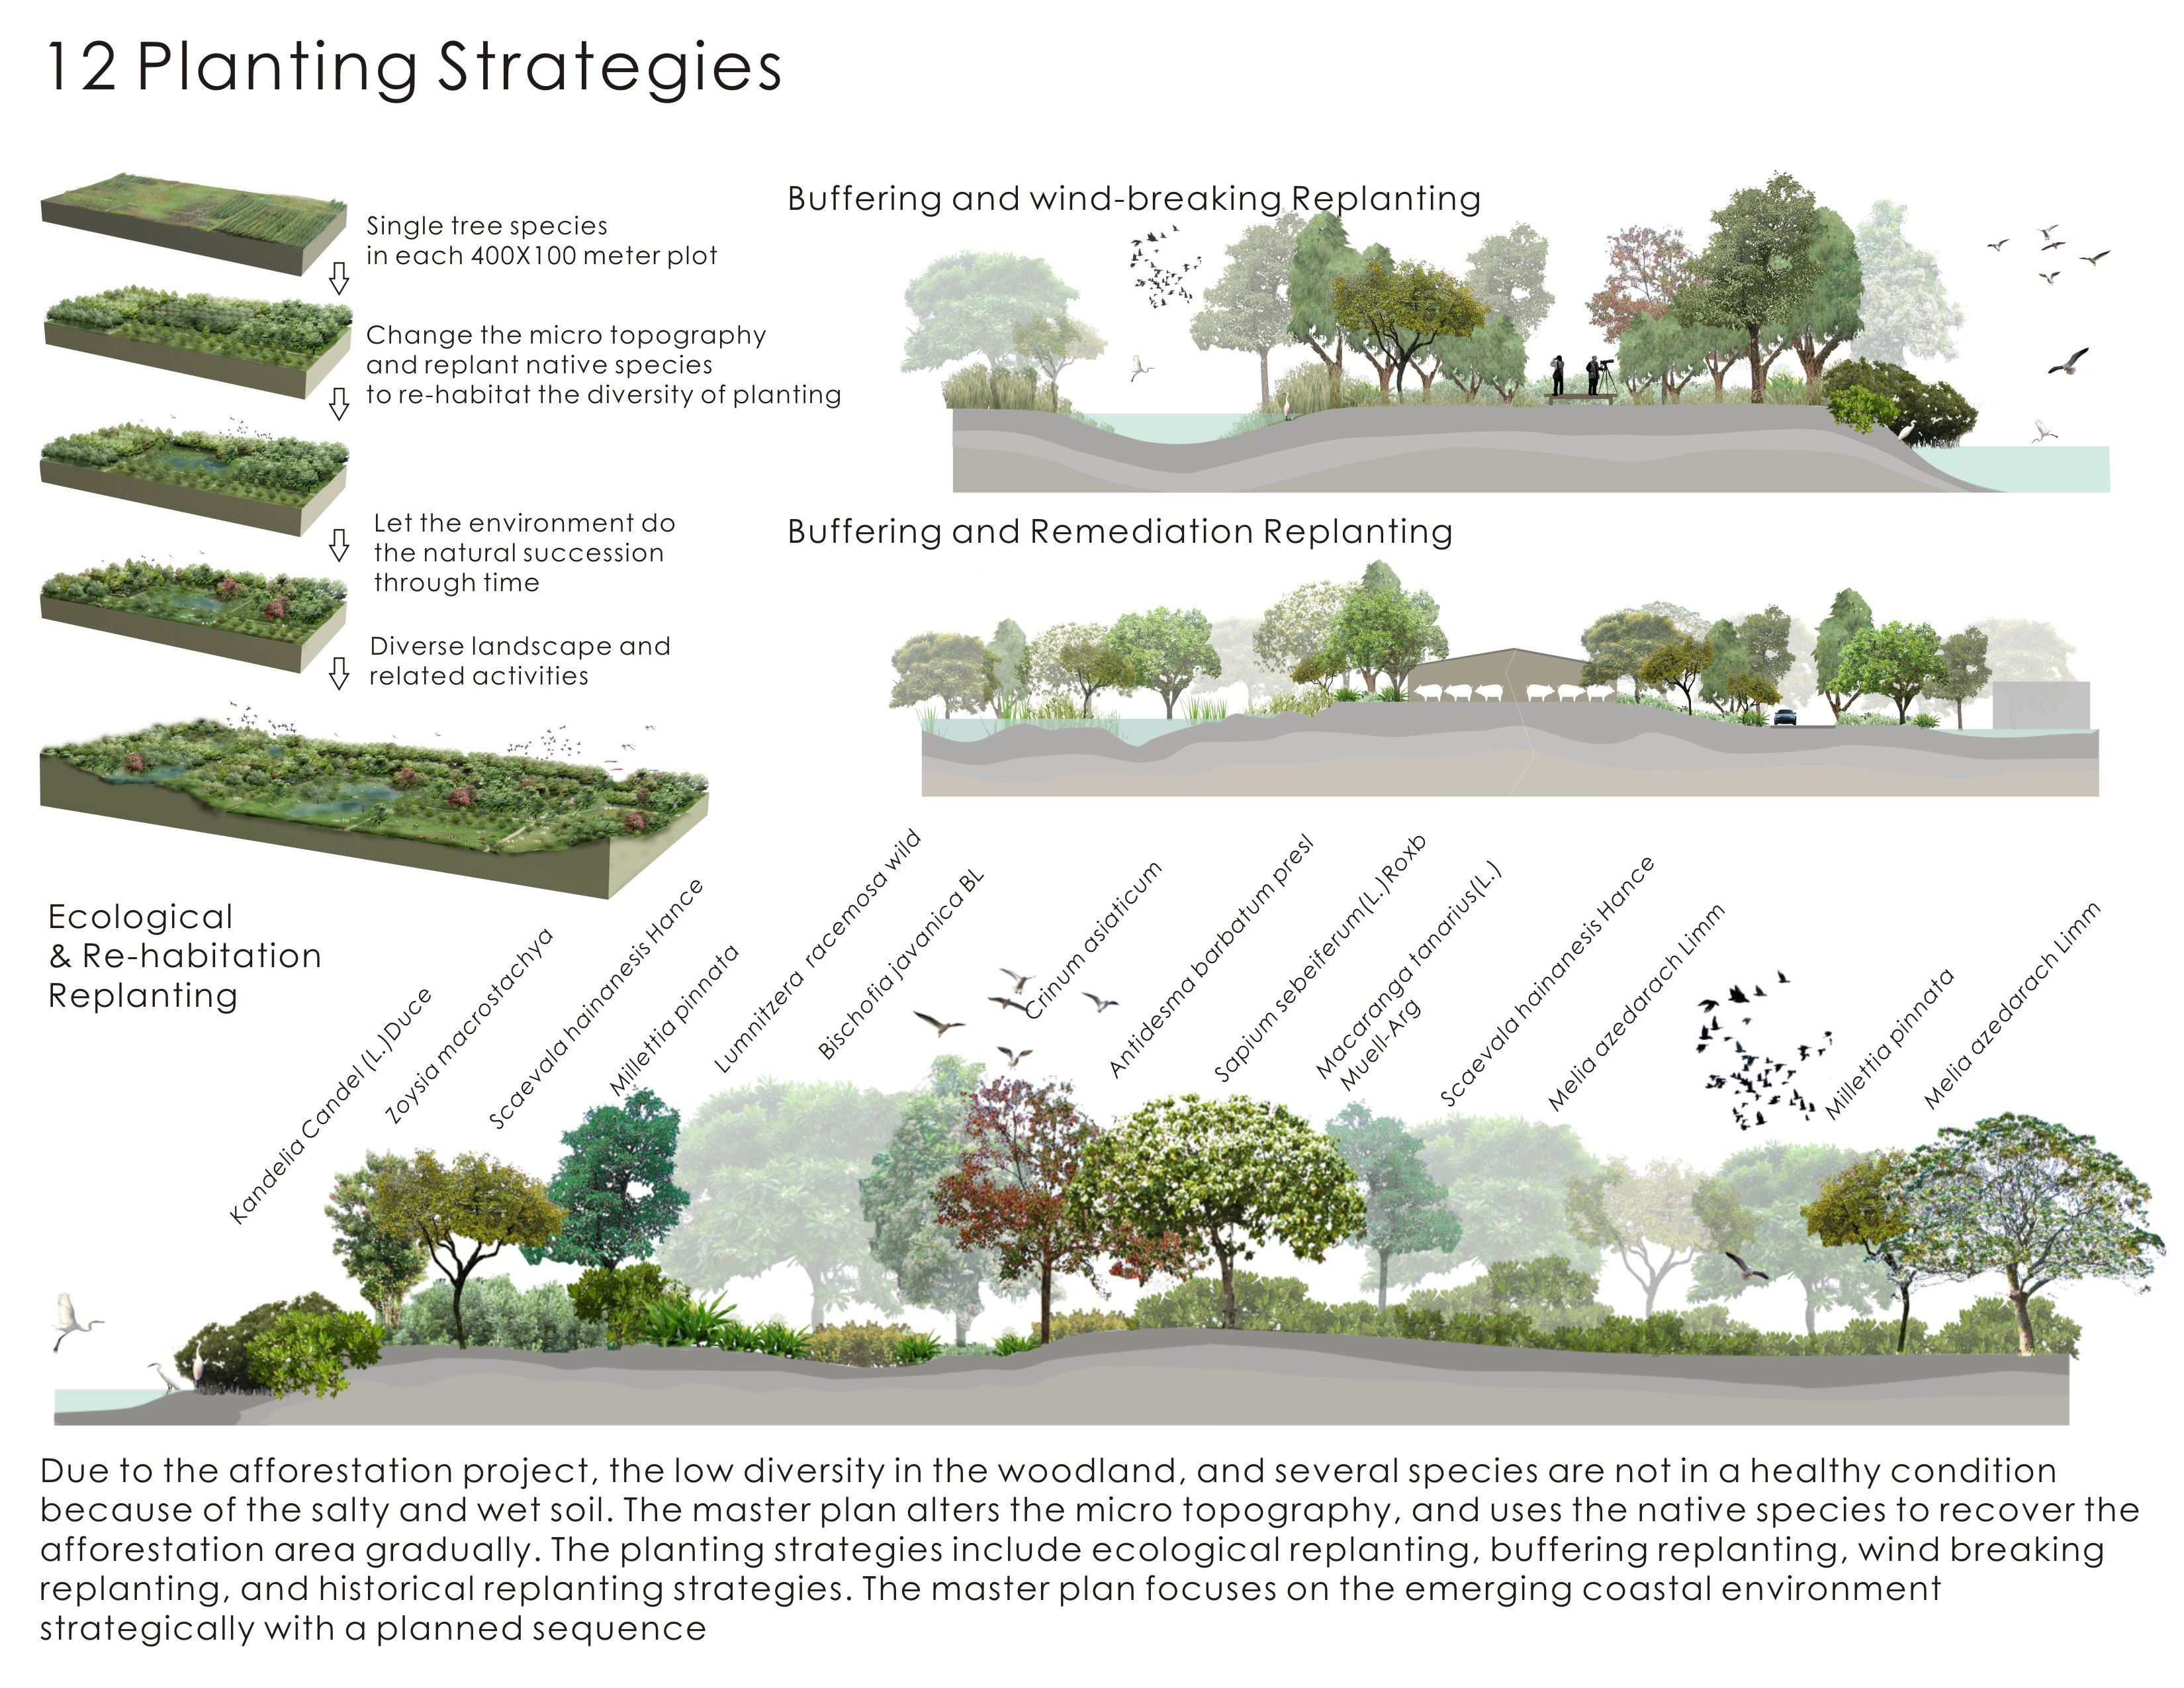 New How to Become A Landscape Architect